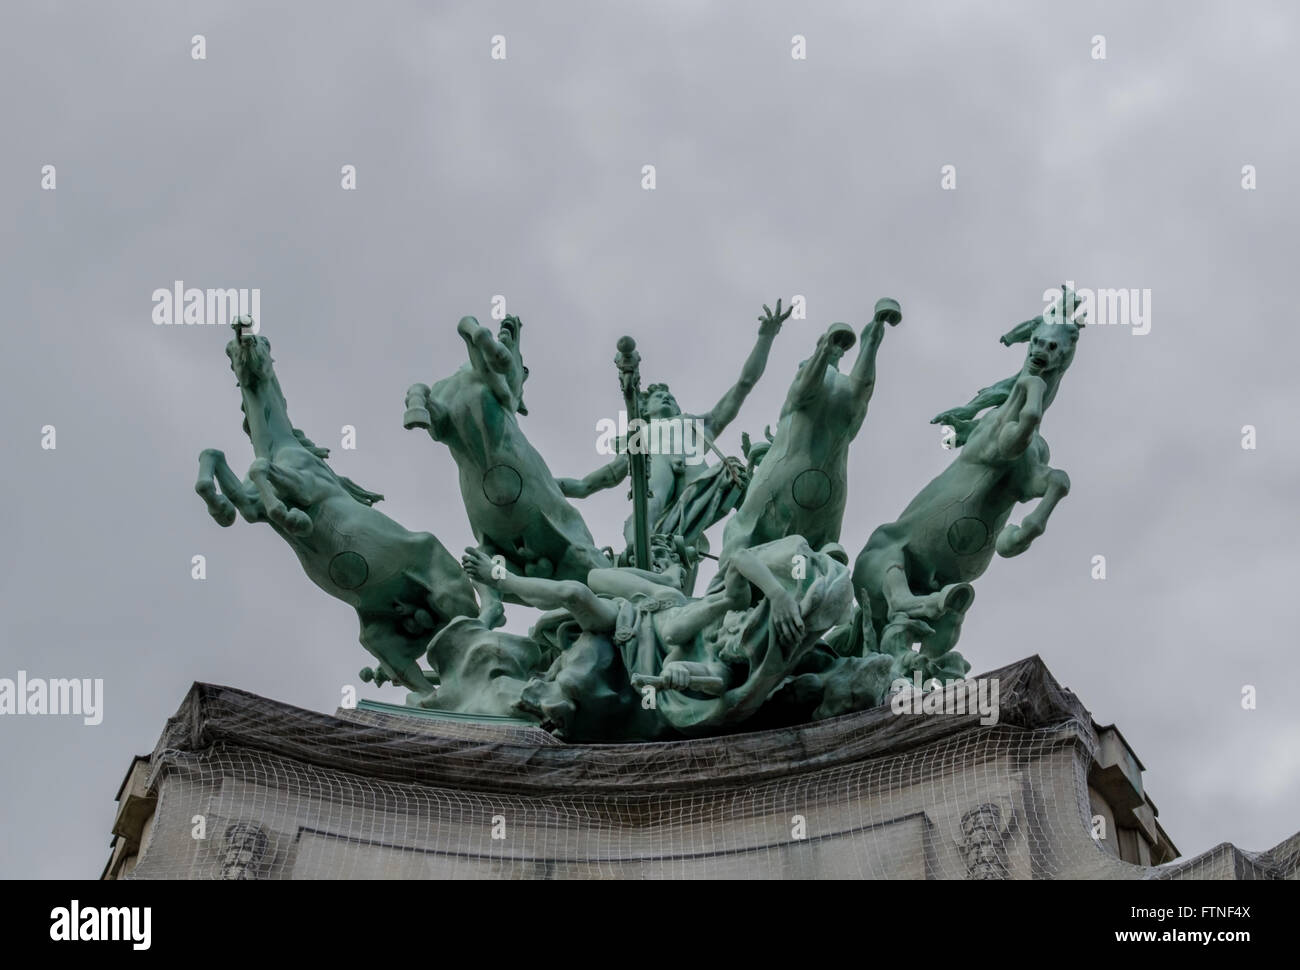 A statue of horses from below in Paris, France - Stock Image